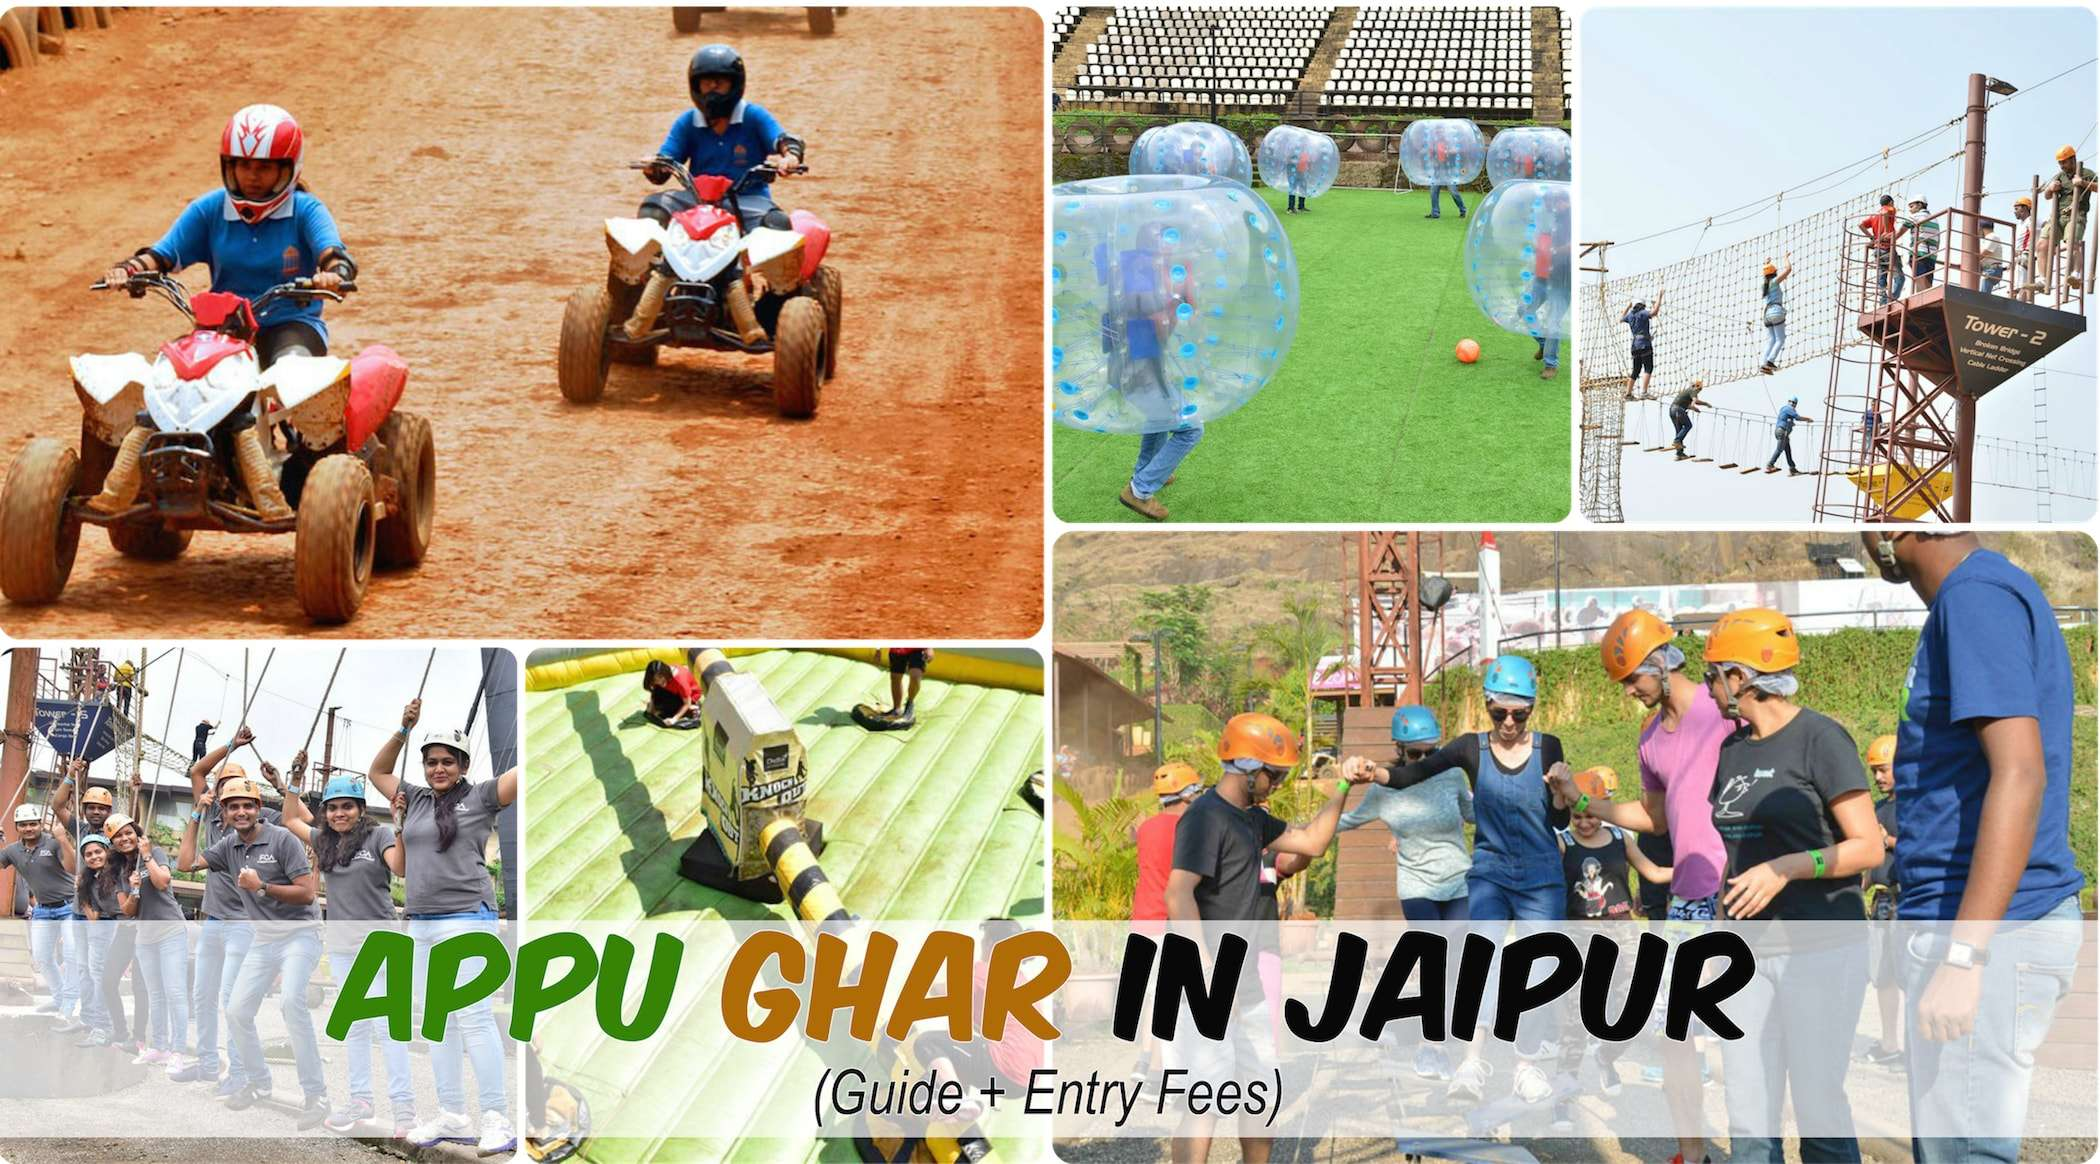 Appu ghar jaipur entry fees india travel forum appu ghar jaipurg altavistaventures Gallery